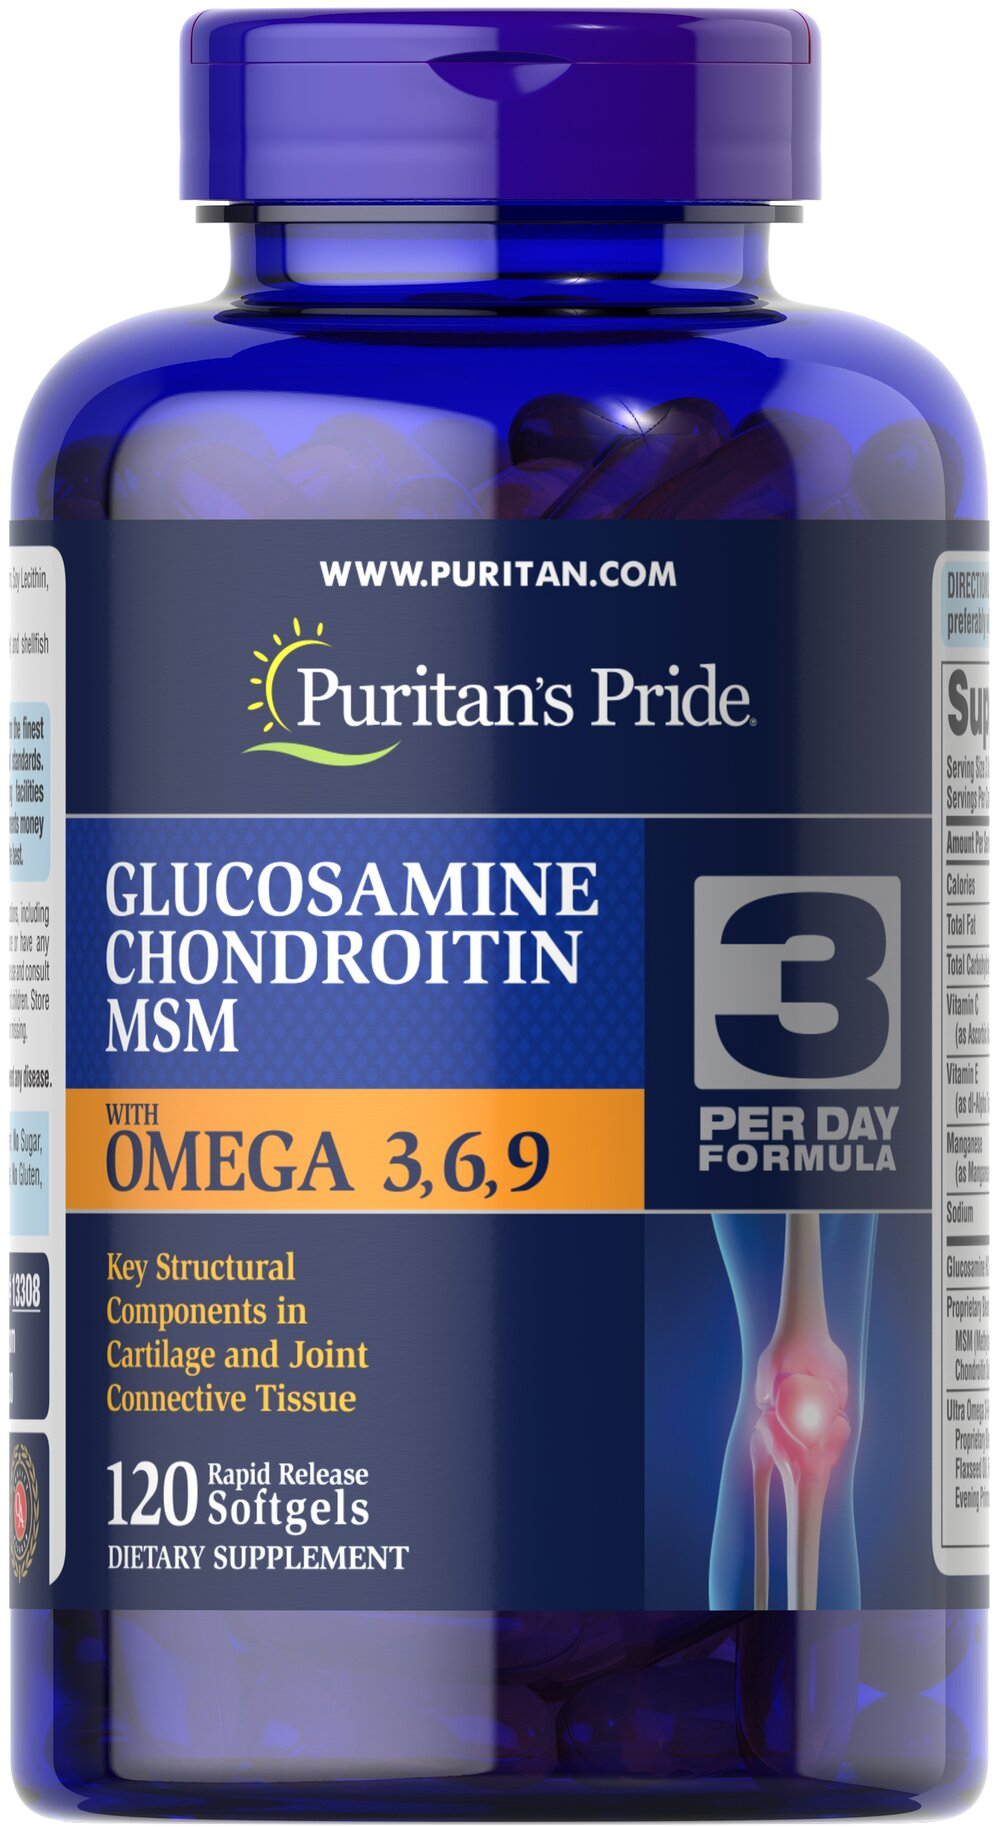 Glucosamine, Chondroitin & MSM with Omega 3, 6, 9 <p>The active ingredients in Joint Soother® are popular for their joint supporting abilities.** This formulation also includes <strong>Omega-3, -6, and -9 fatty acids</strong> from Primrose, Flax and Fish body oils. Support your mobility and flexibility with this formula.</p> 120 Softgels  $53.49